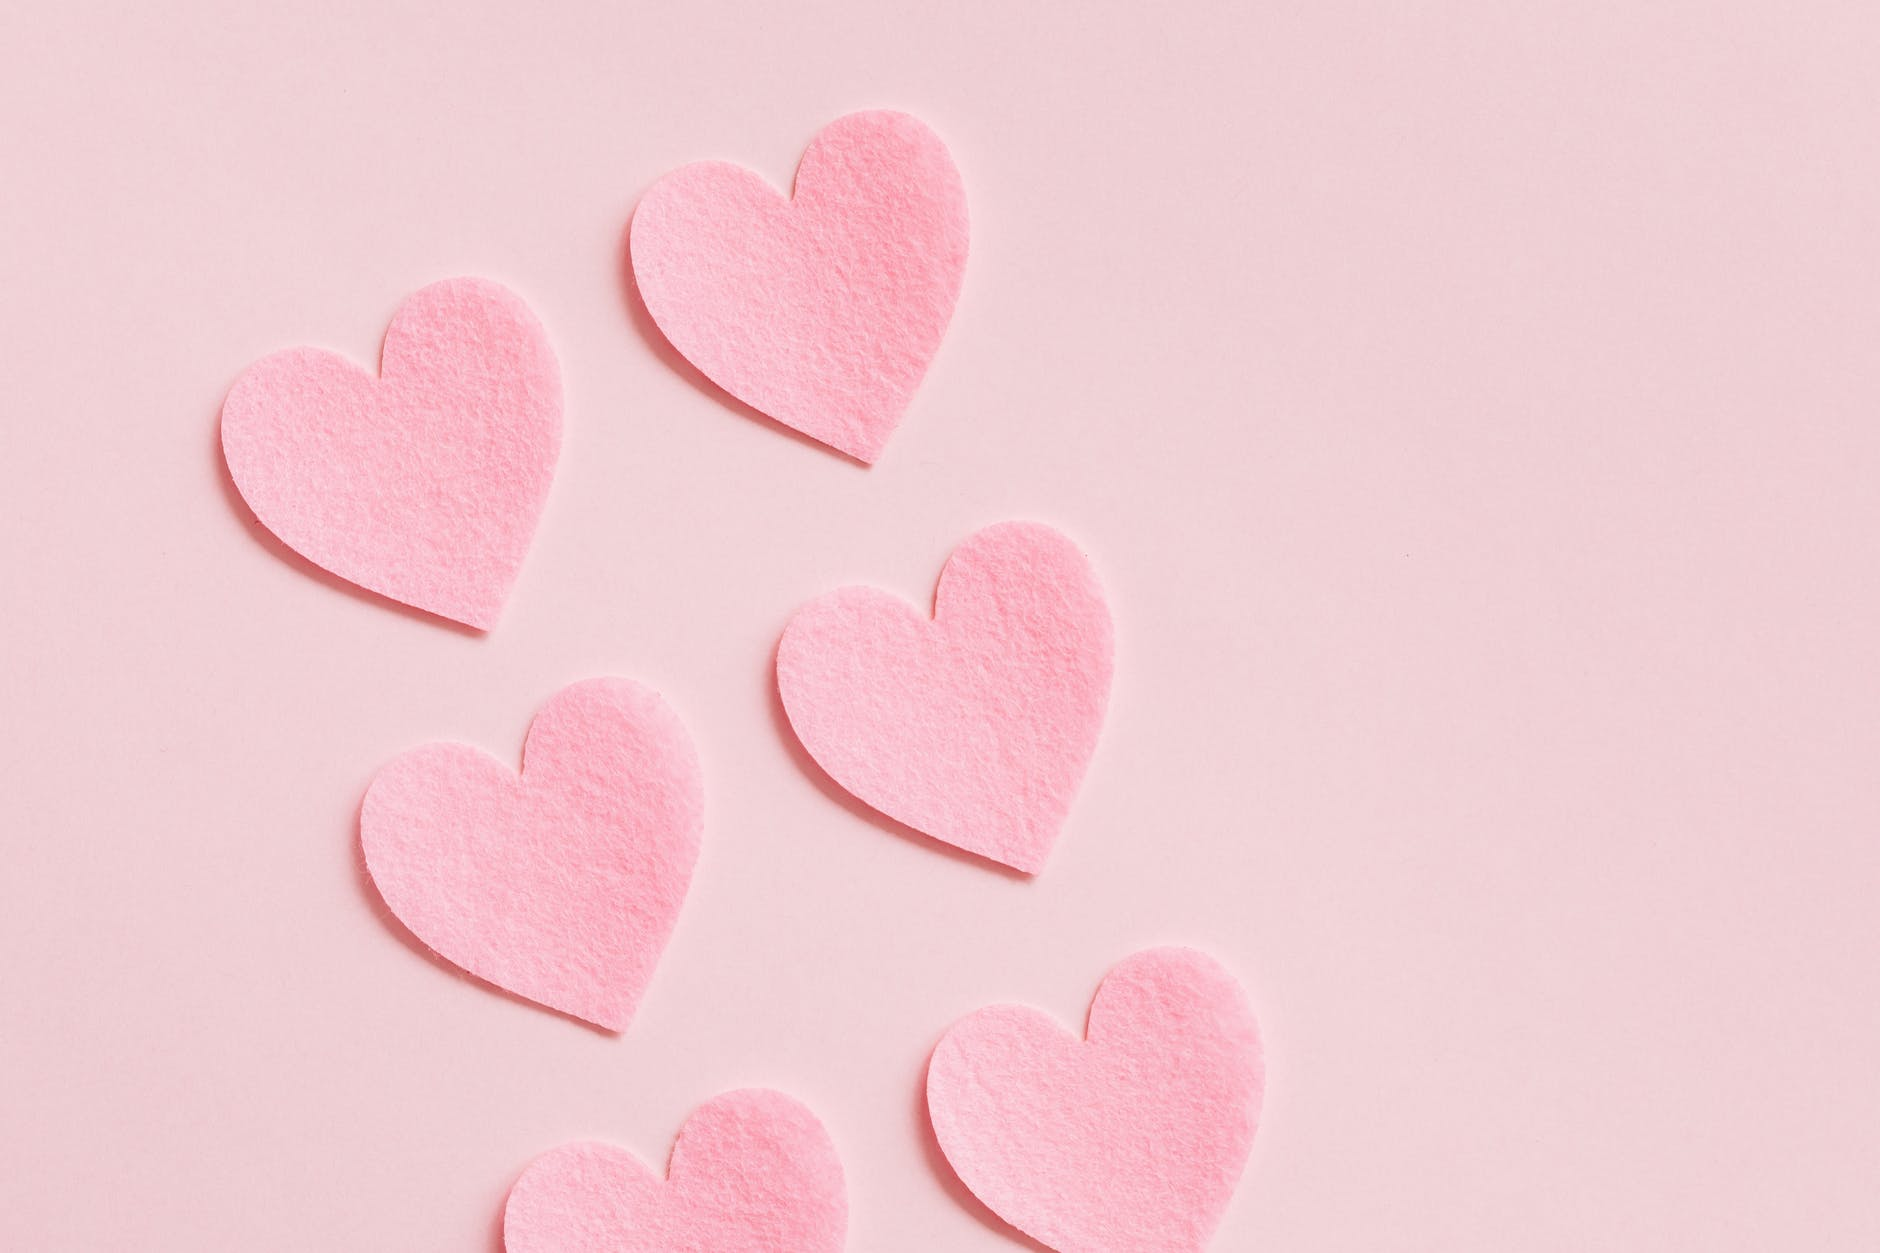 heart shaped paper cutouts on pink background